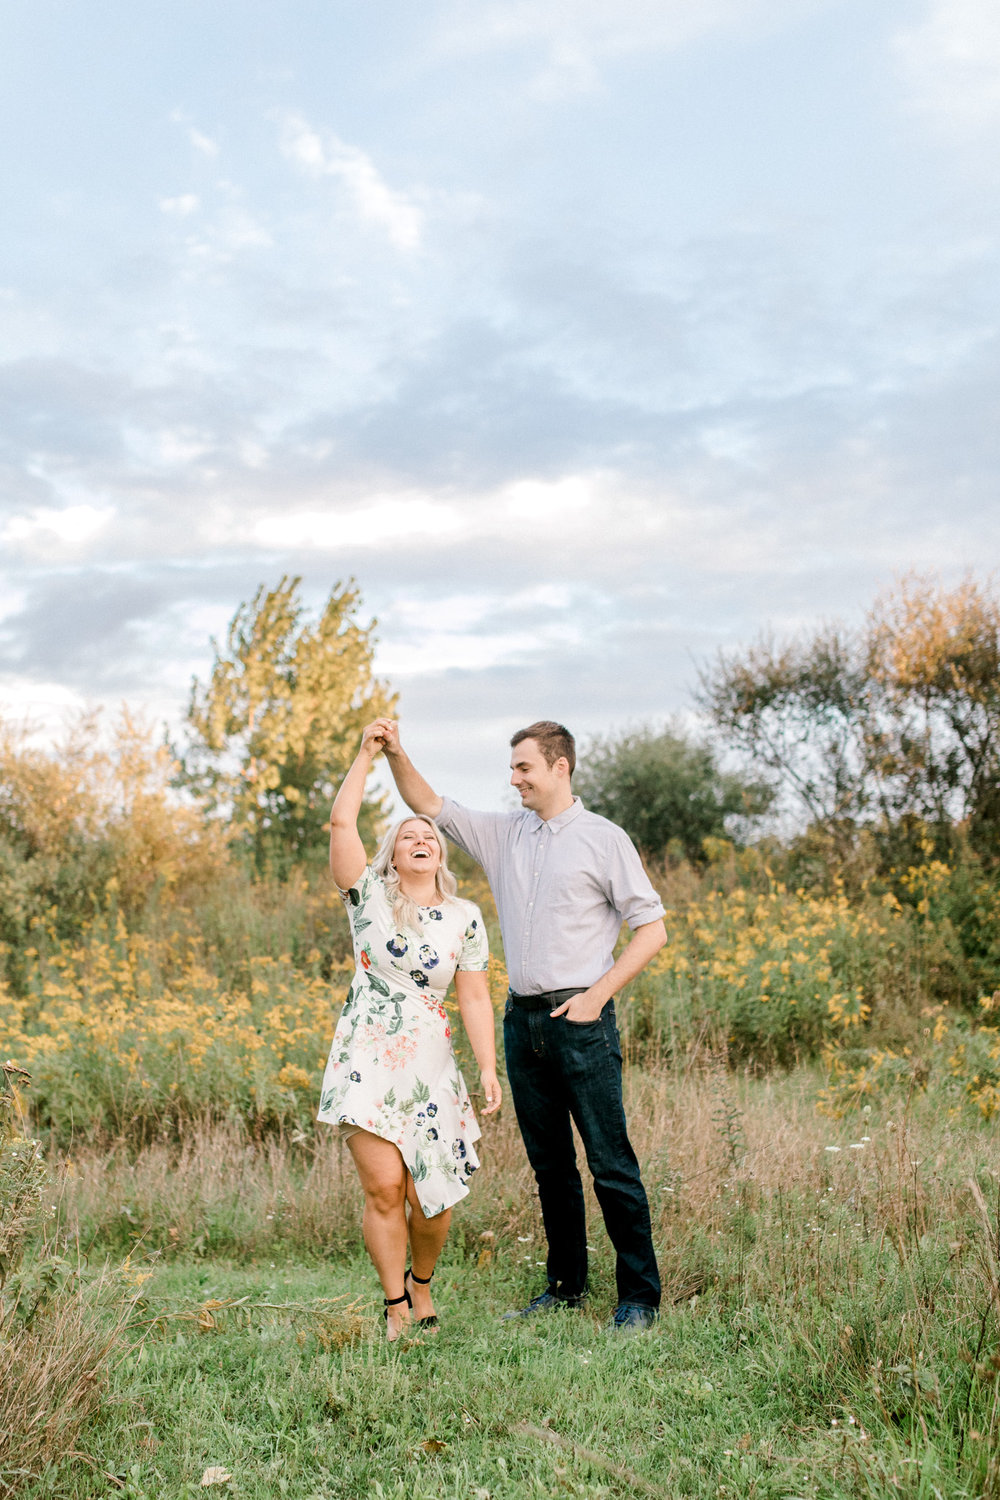 Summer engagement session | Wildflowers | Field engagement session | Floral Engagement Dress | West Michigan Wedding Photography